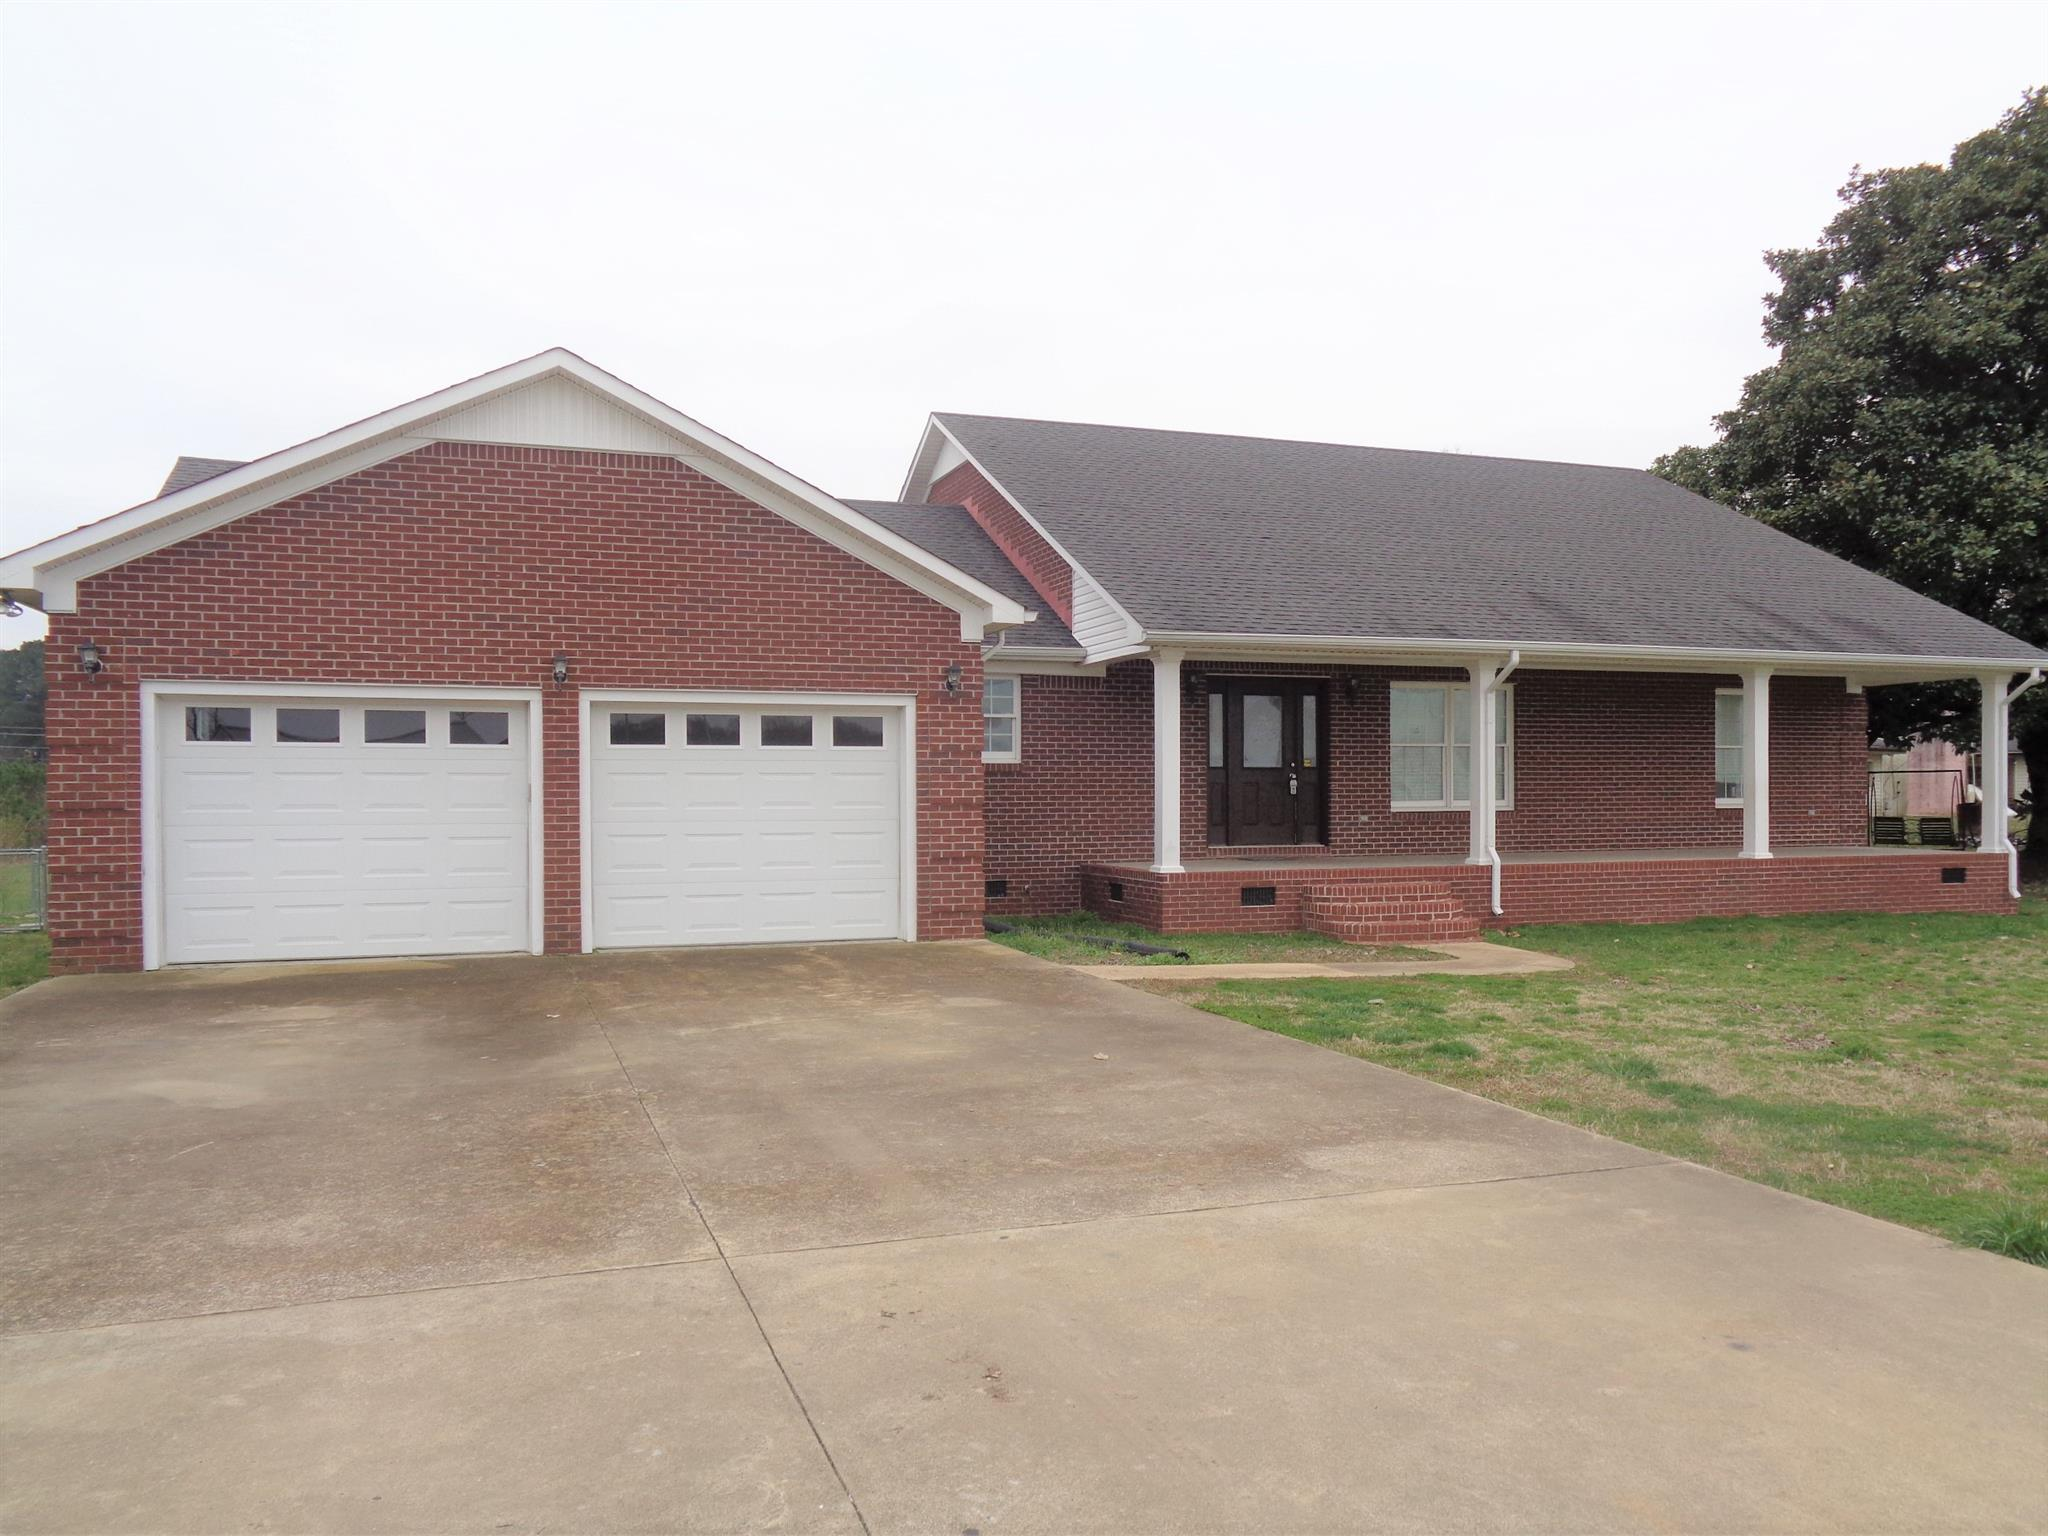 110 W Augustin Dr, Loretto, TN 38469 - Loretto, TN real estate listing